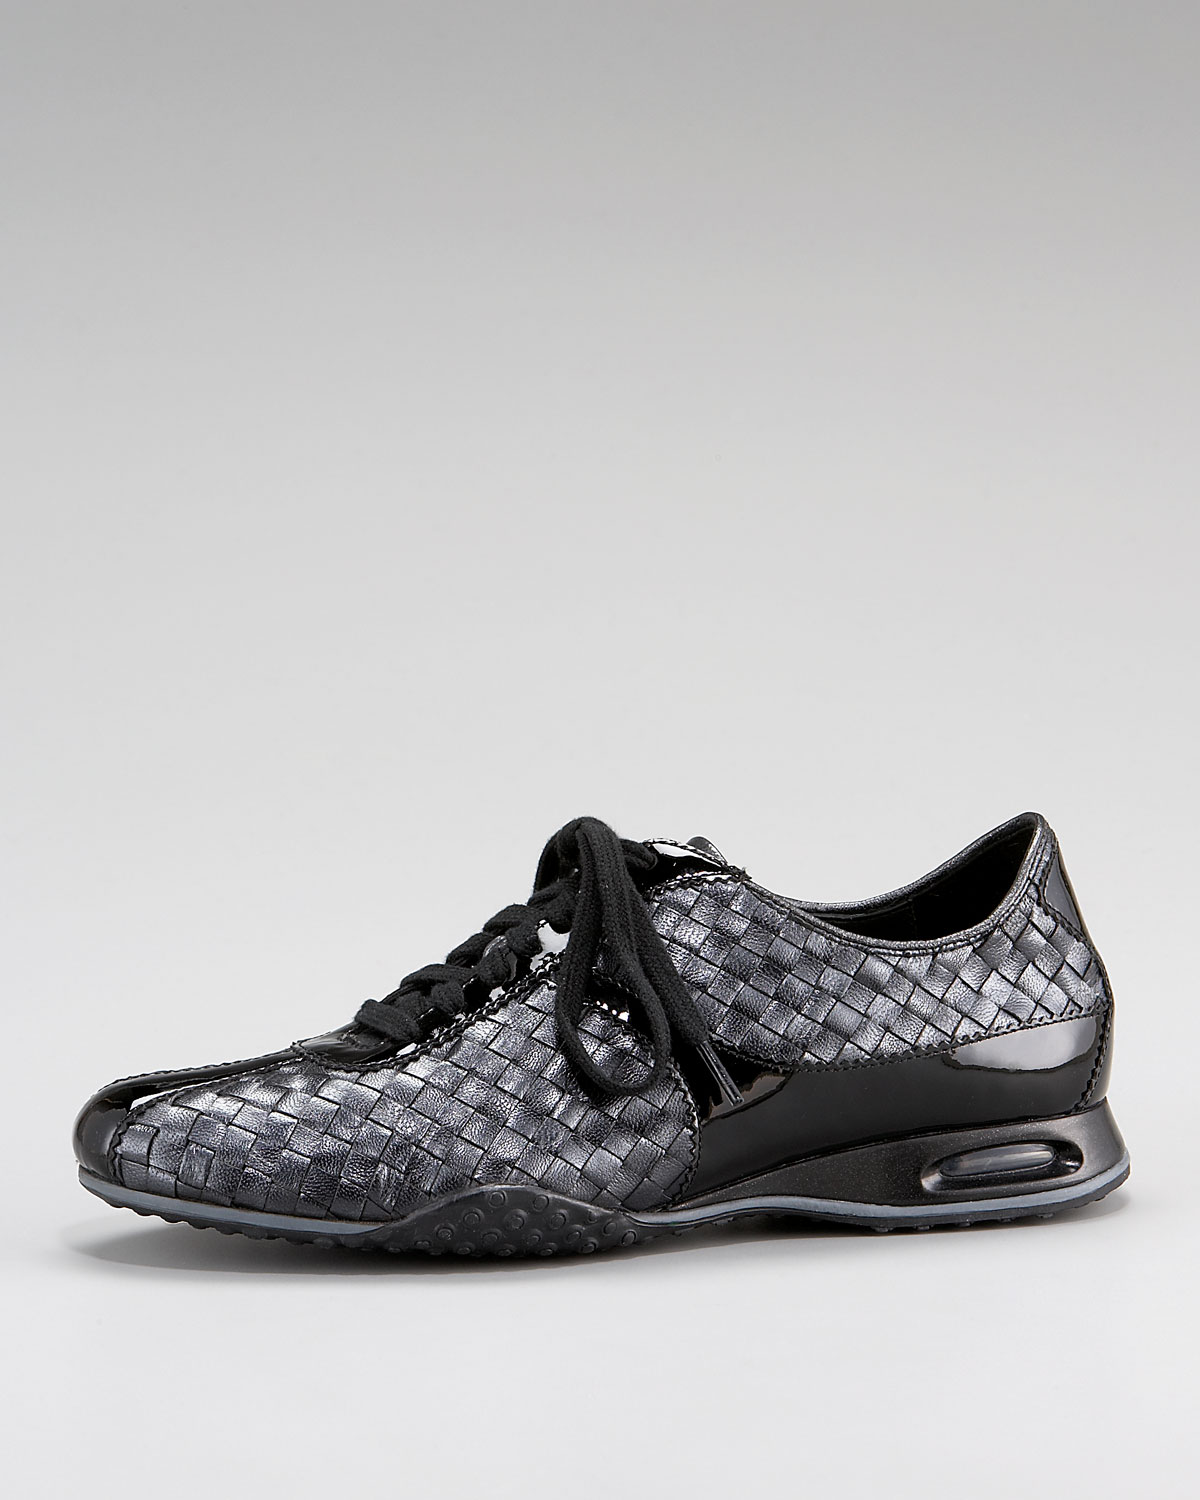 Cole Haan Womens Air Bria Woven Oxford In Black Lyst